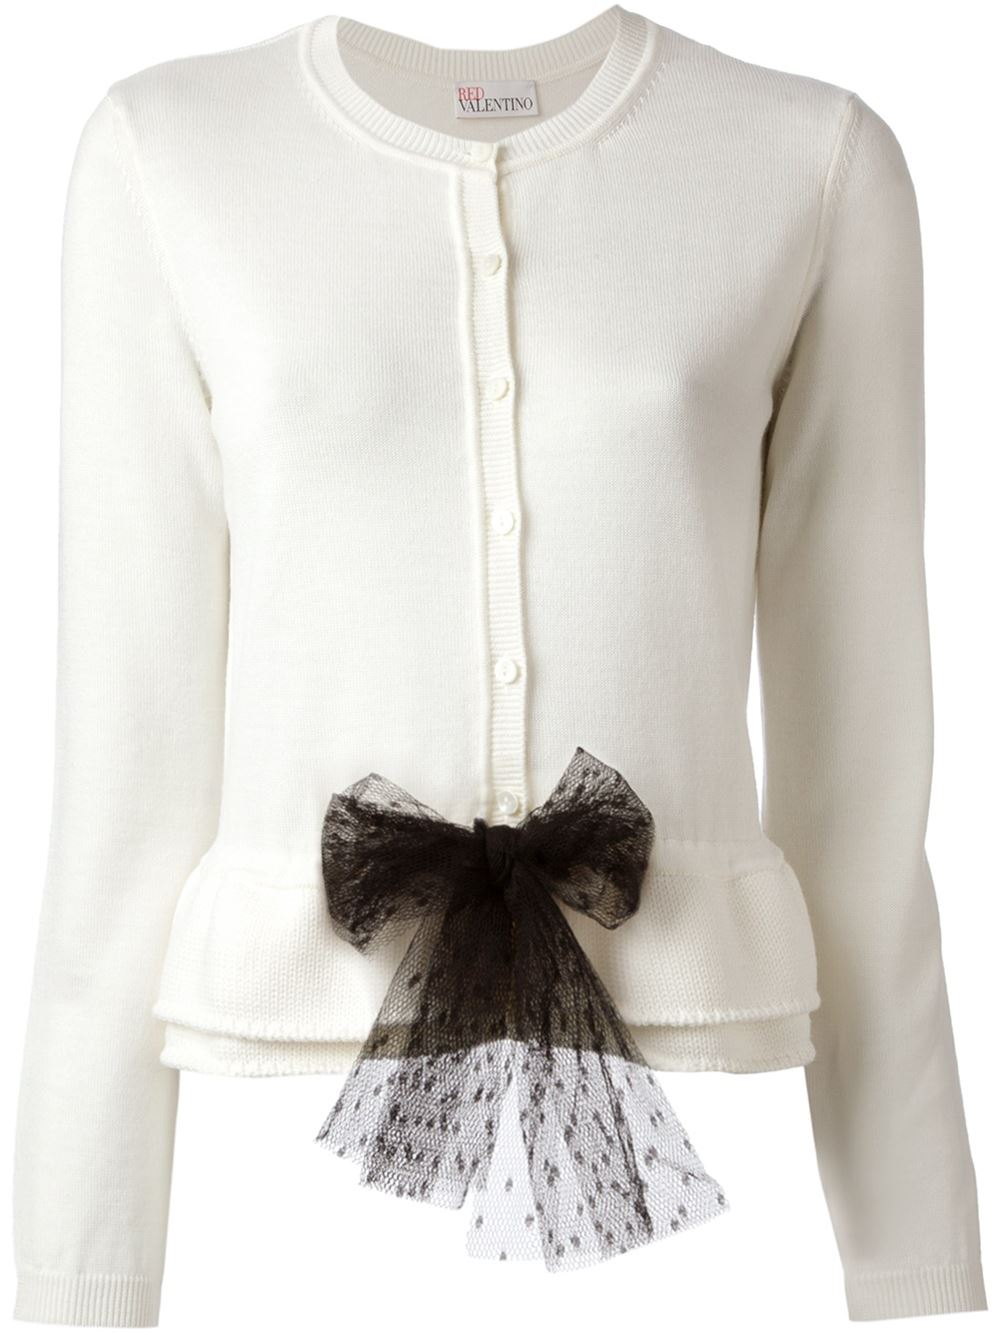 Red valentino Bow Cardigan in White | Lyst